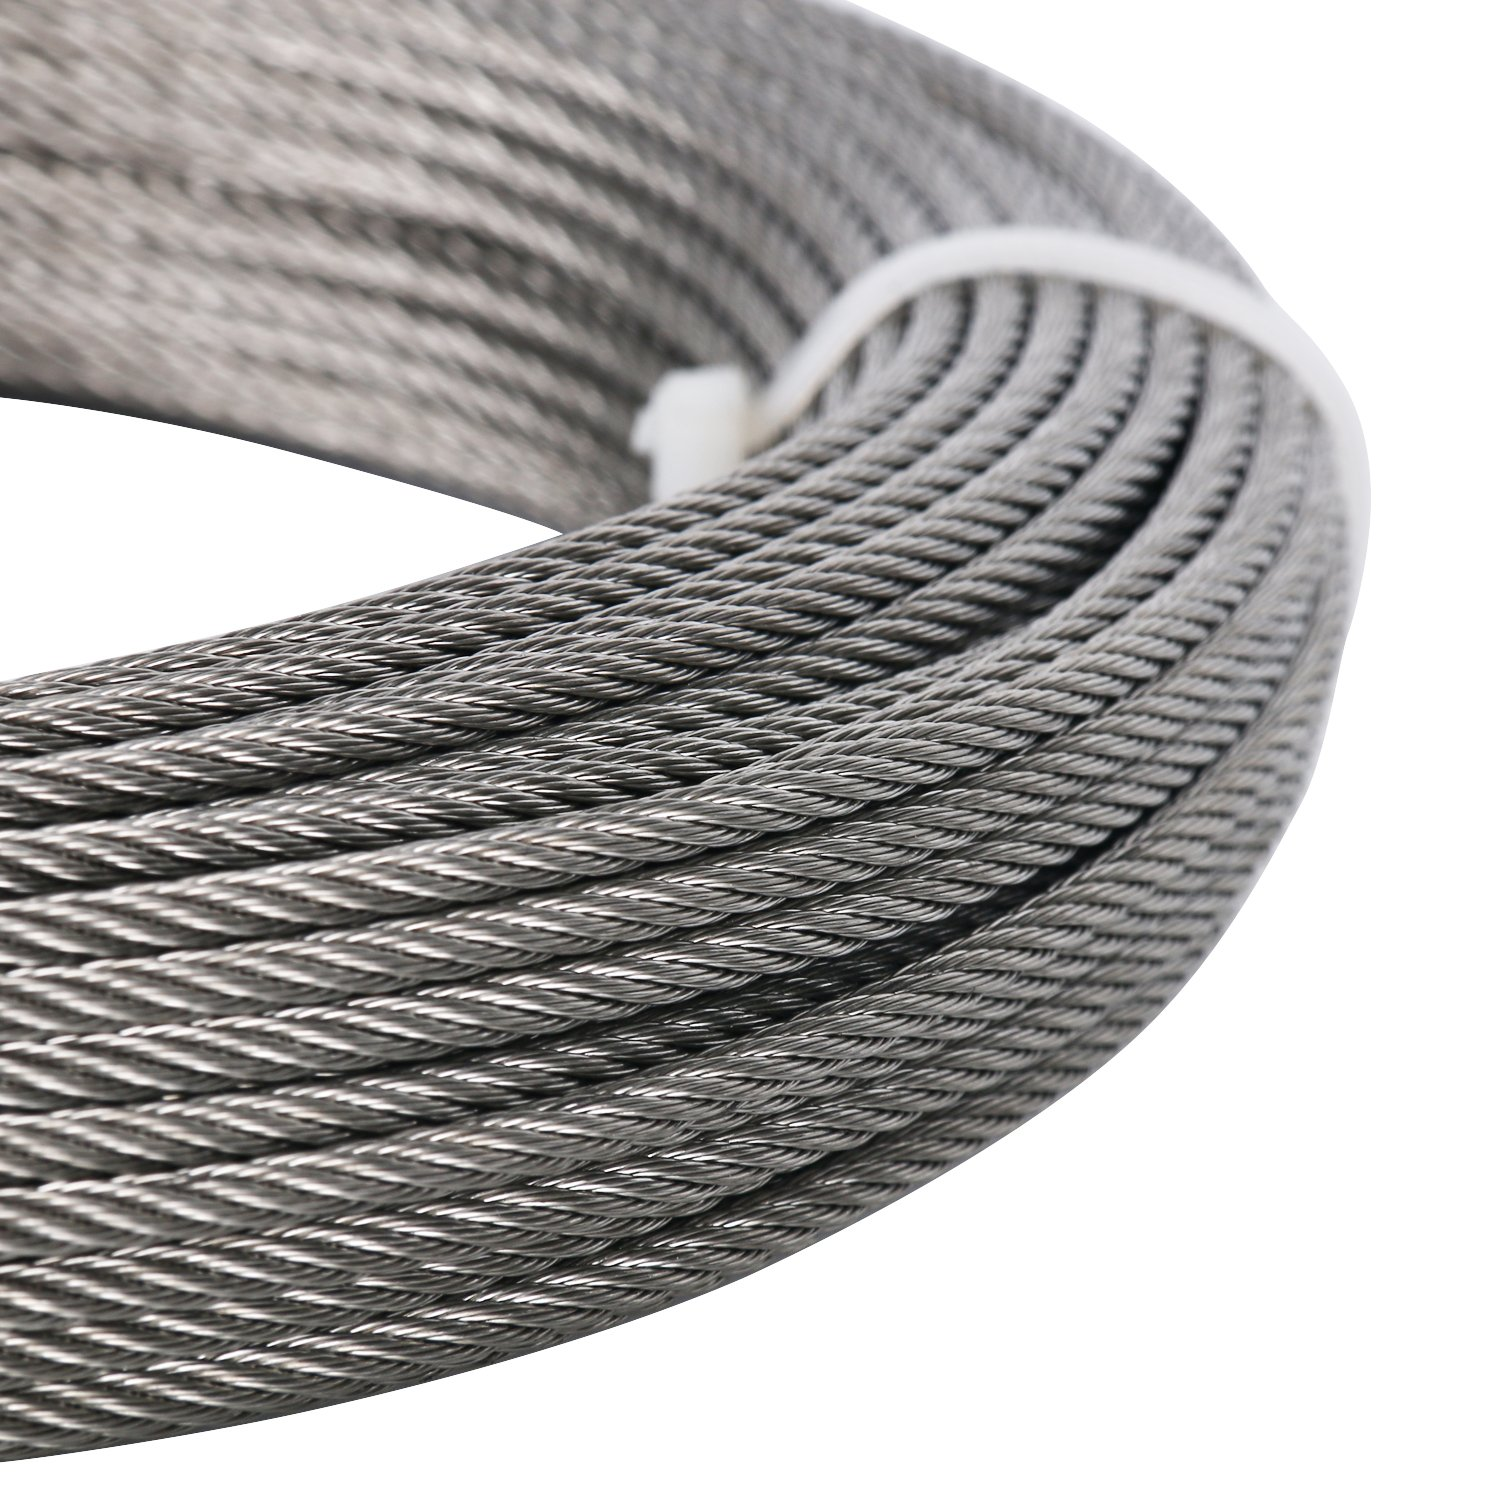 DasMarine Stainless Aircraft Steel Wire Rope Cable for Railing,Decking, DIY Balustrade, 1/8Inch,7x7,164Feet by DasMarine (Image #4)